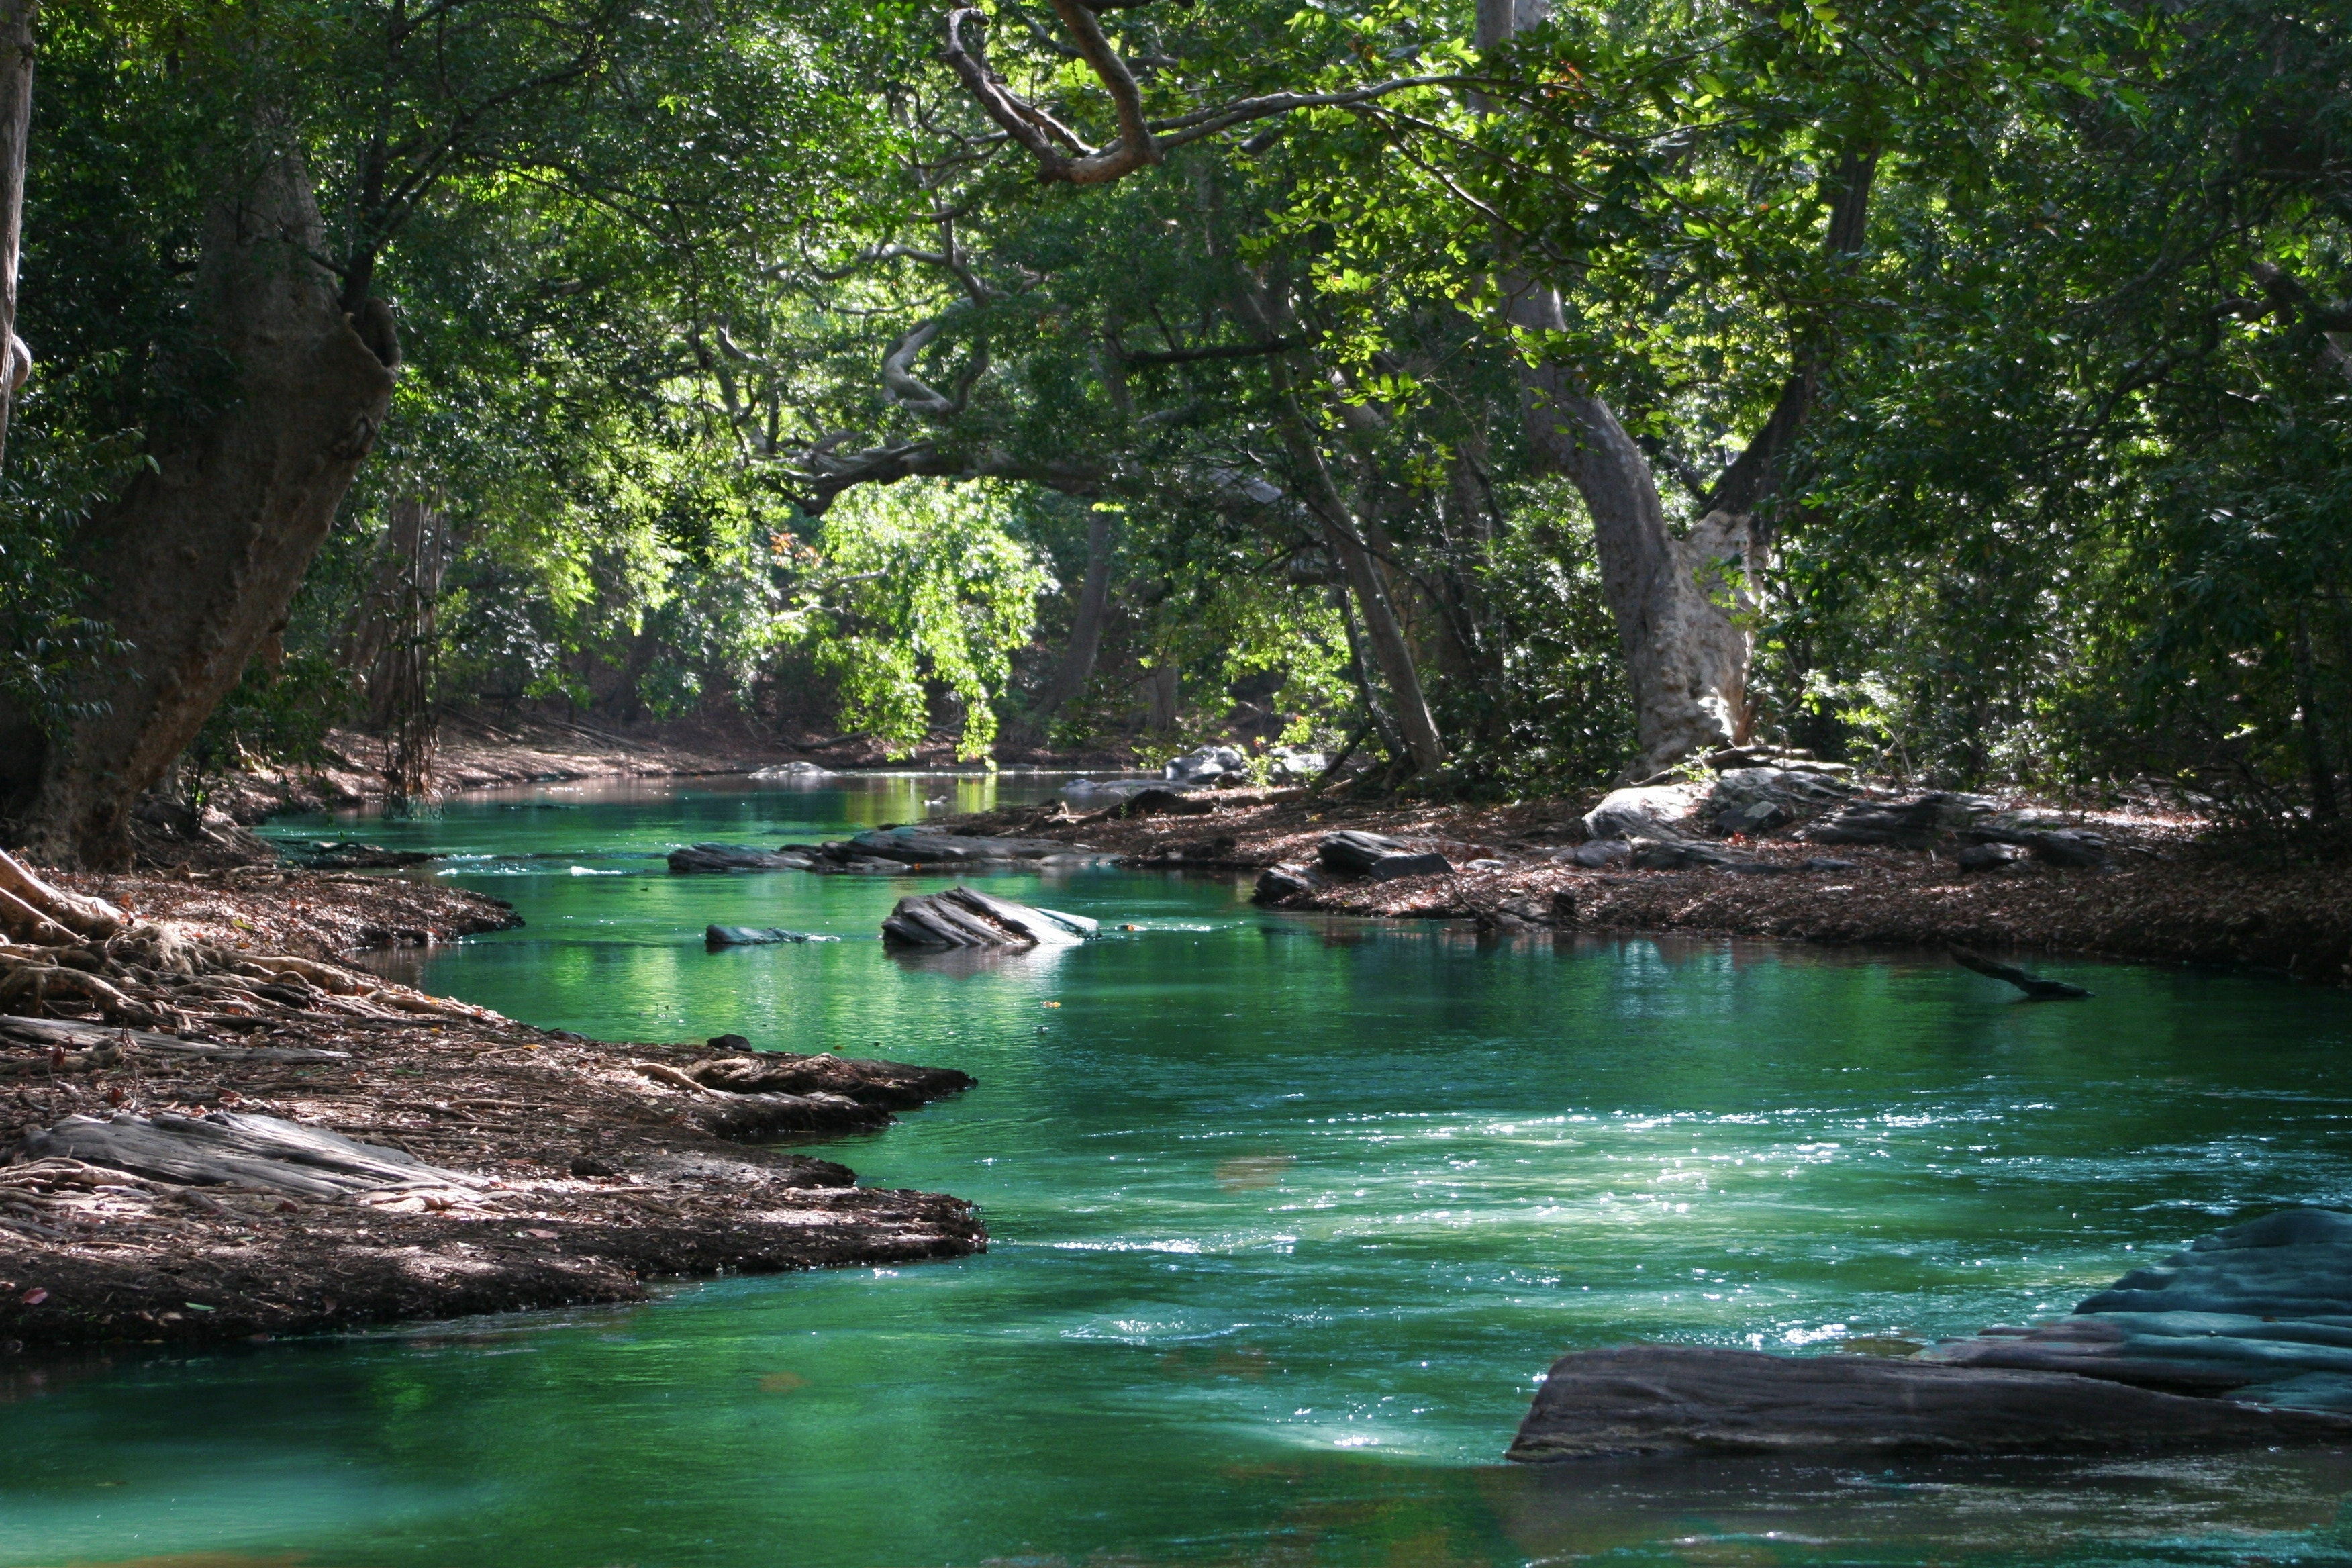 Body of Water Between Green Leaf Trees, River, Wood, Water, Vacation, HQ Photo